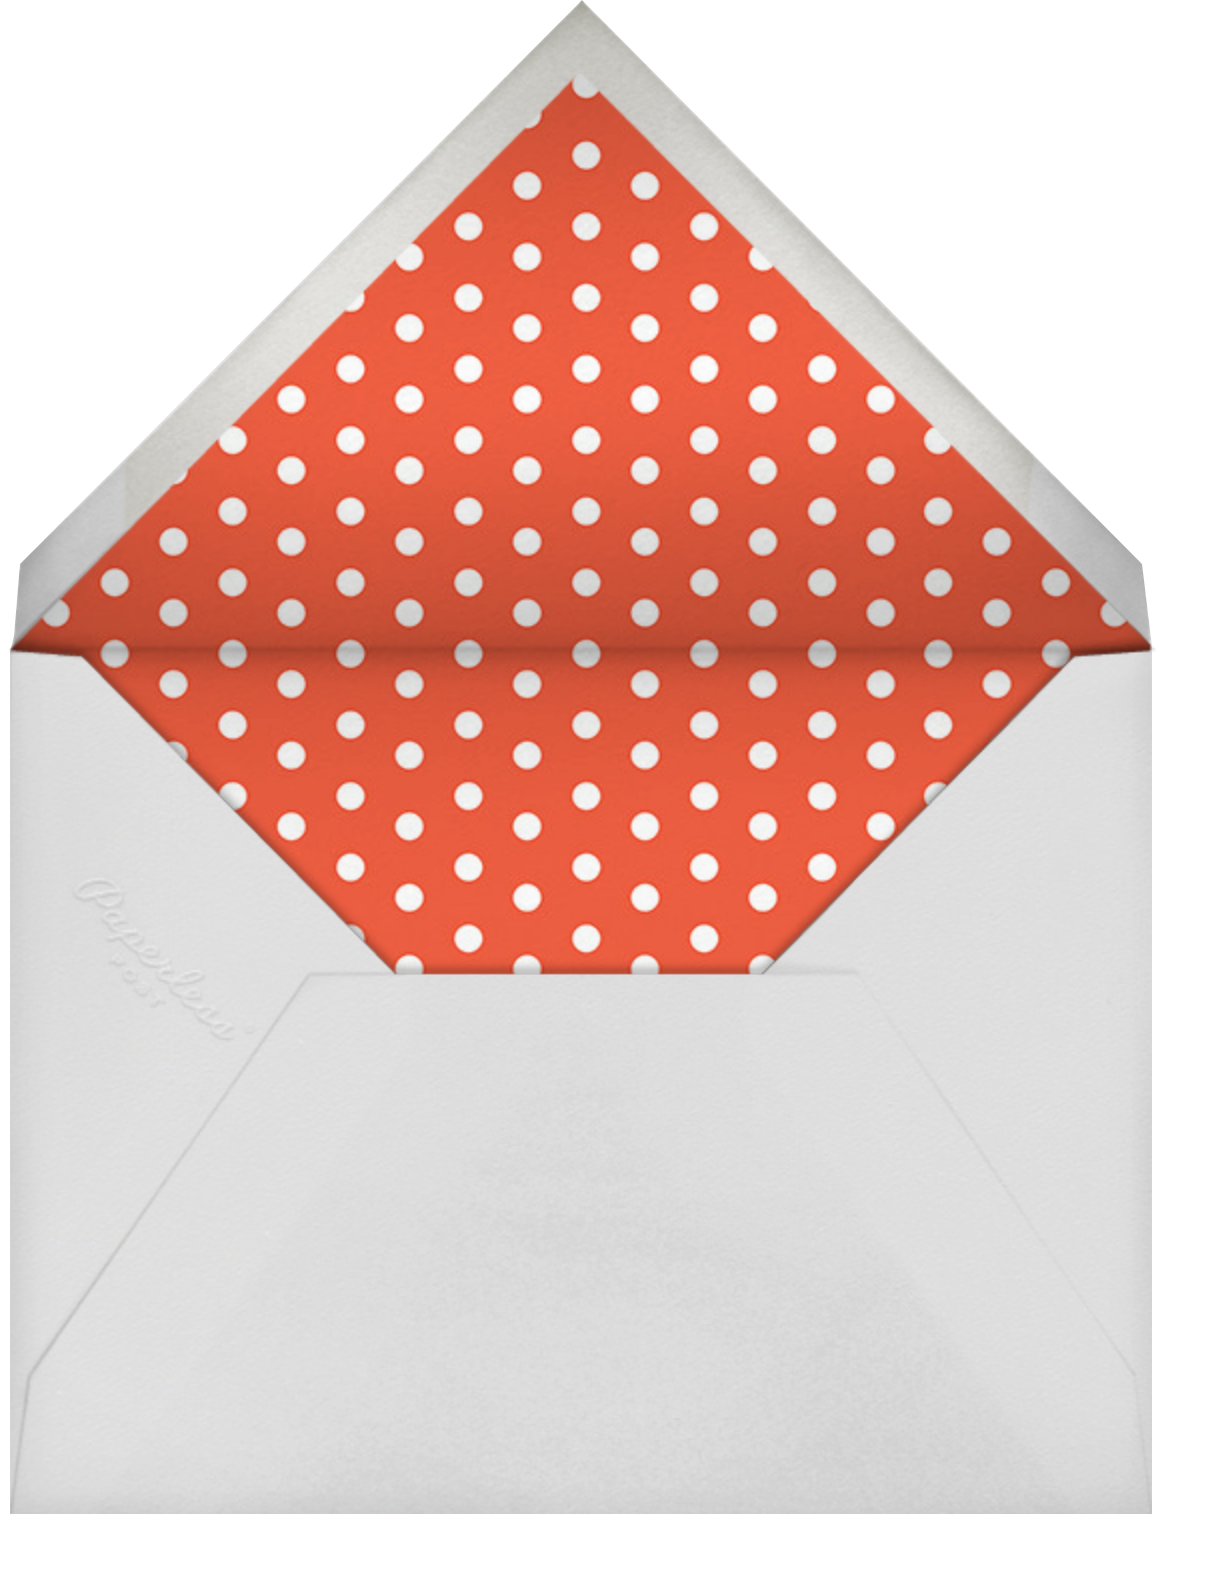 Ski Shades - Tan - Rifle Paper Co. - Winter parties - envelope back